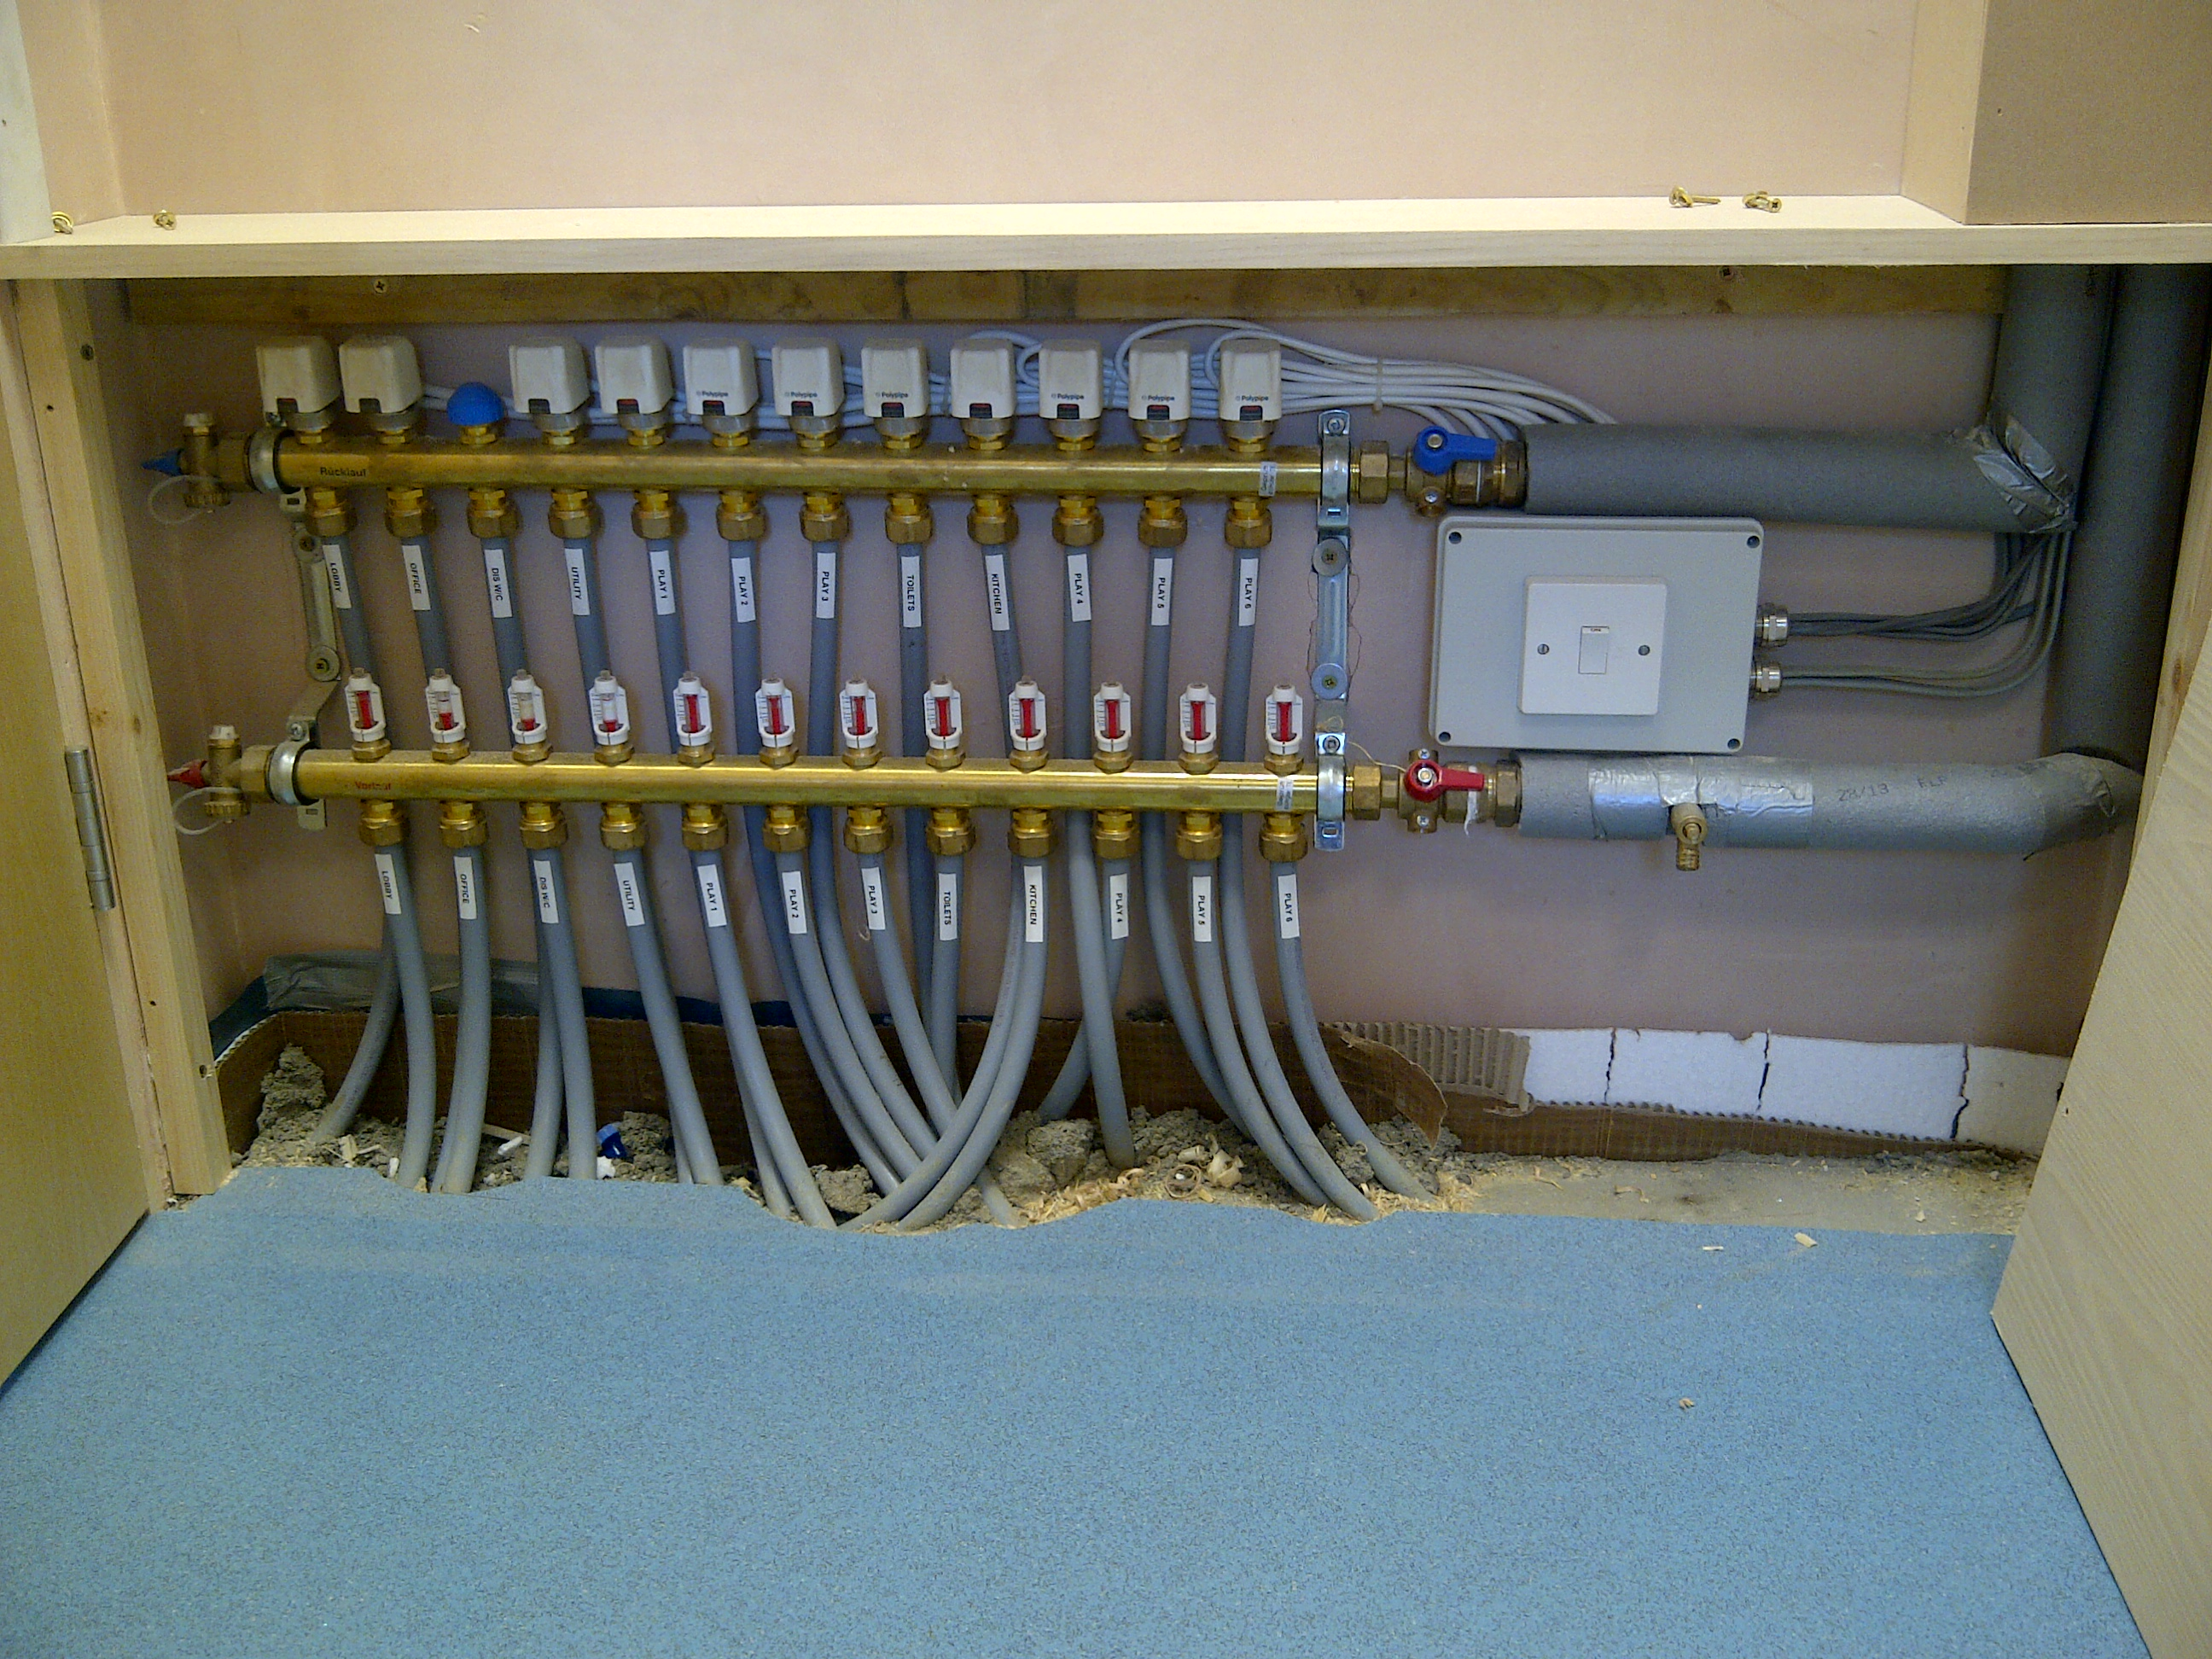 wiring diagram for electric underfloor heating 05 yfz 450 our gallery griffiths air conditioning and electrical